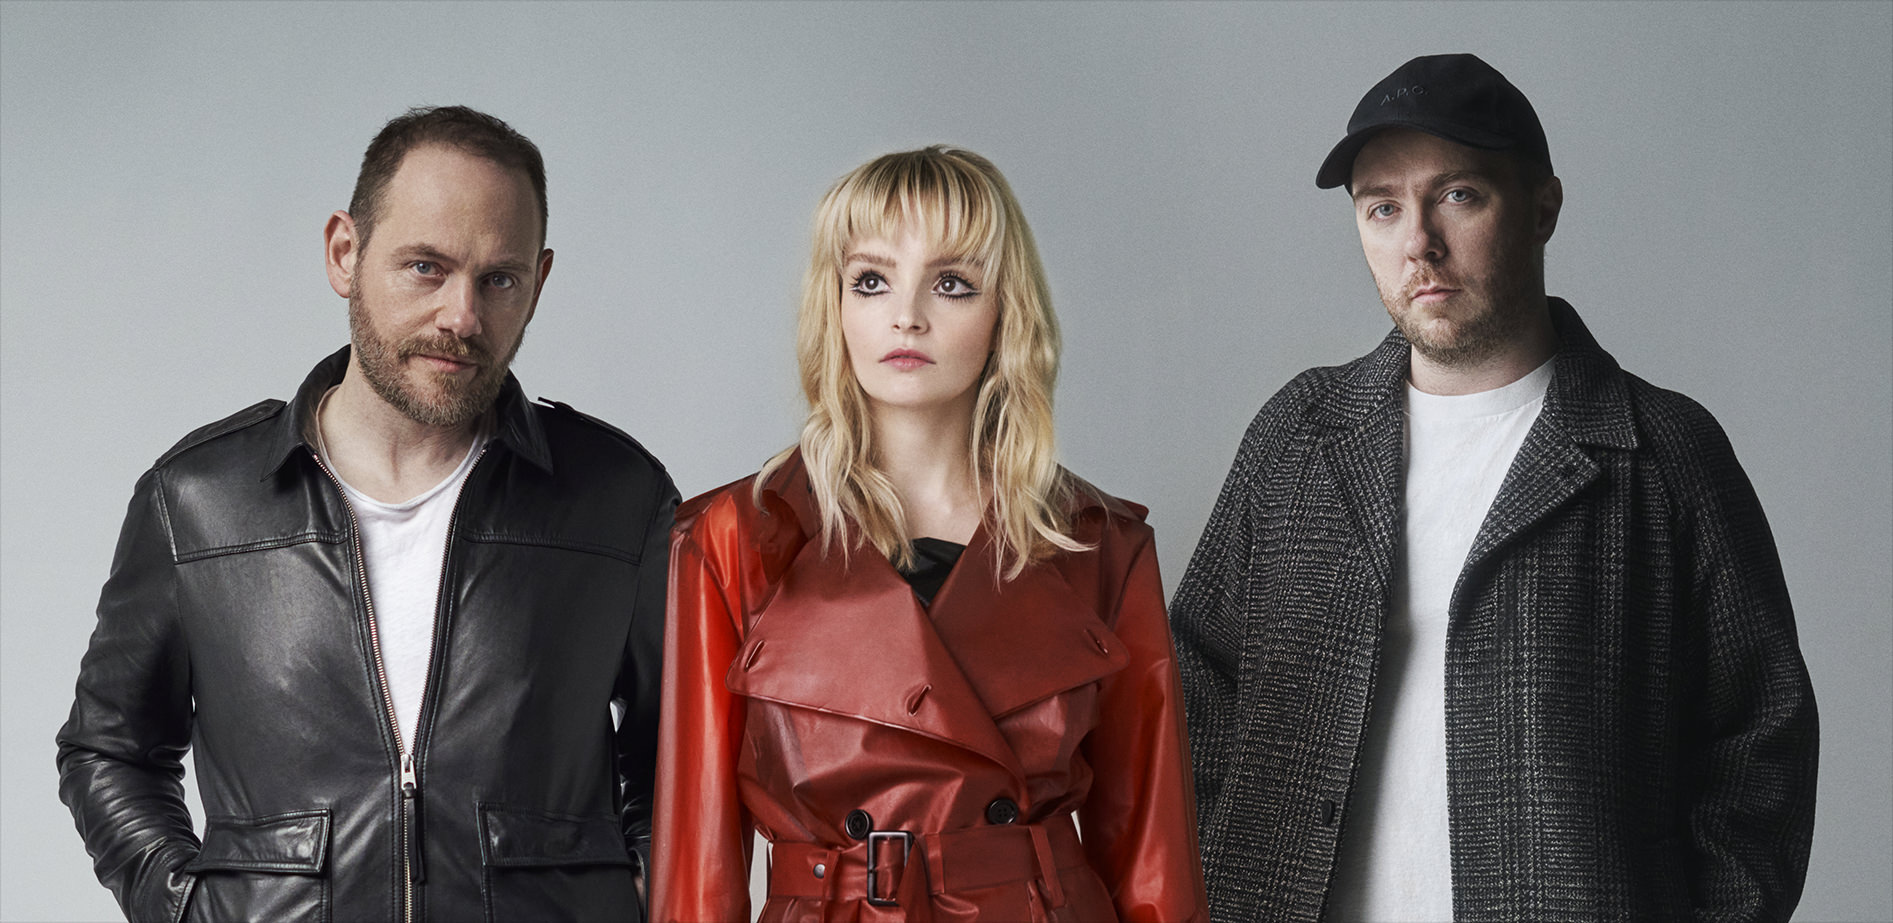 Photo of the band CHVRCHES